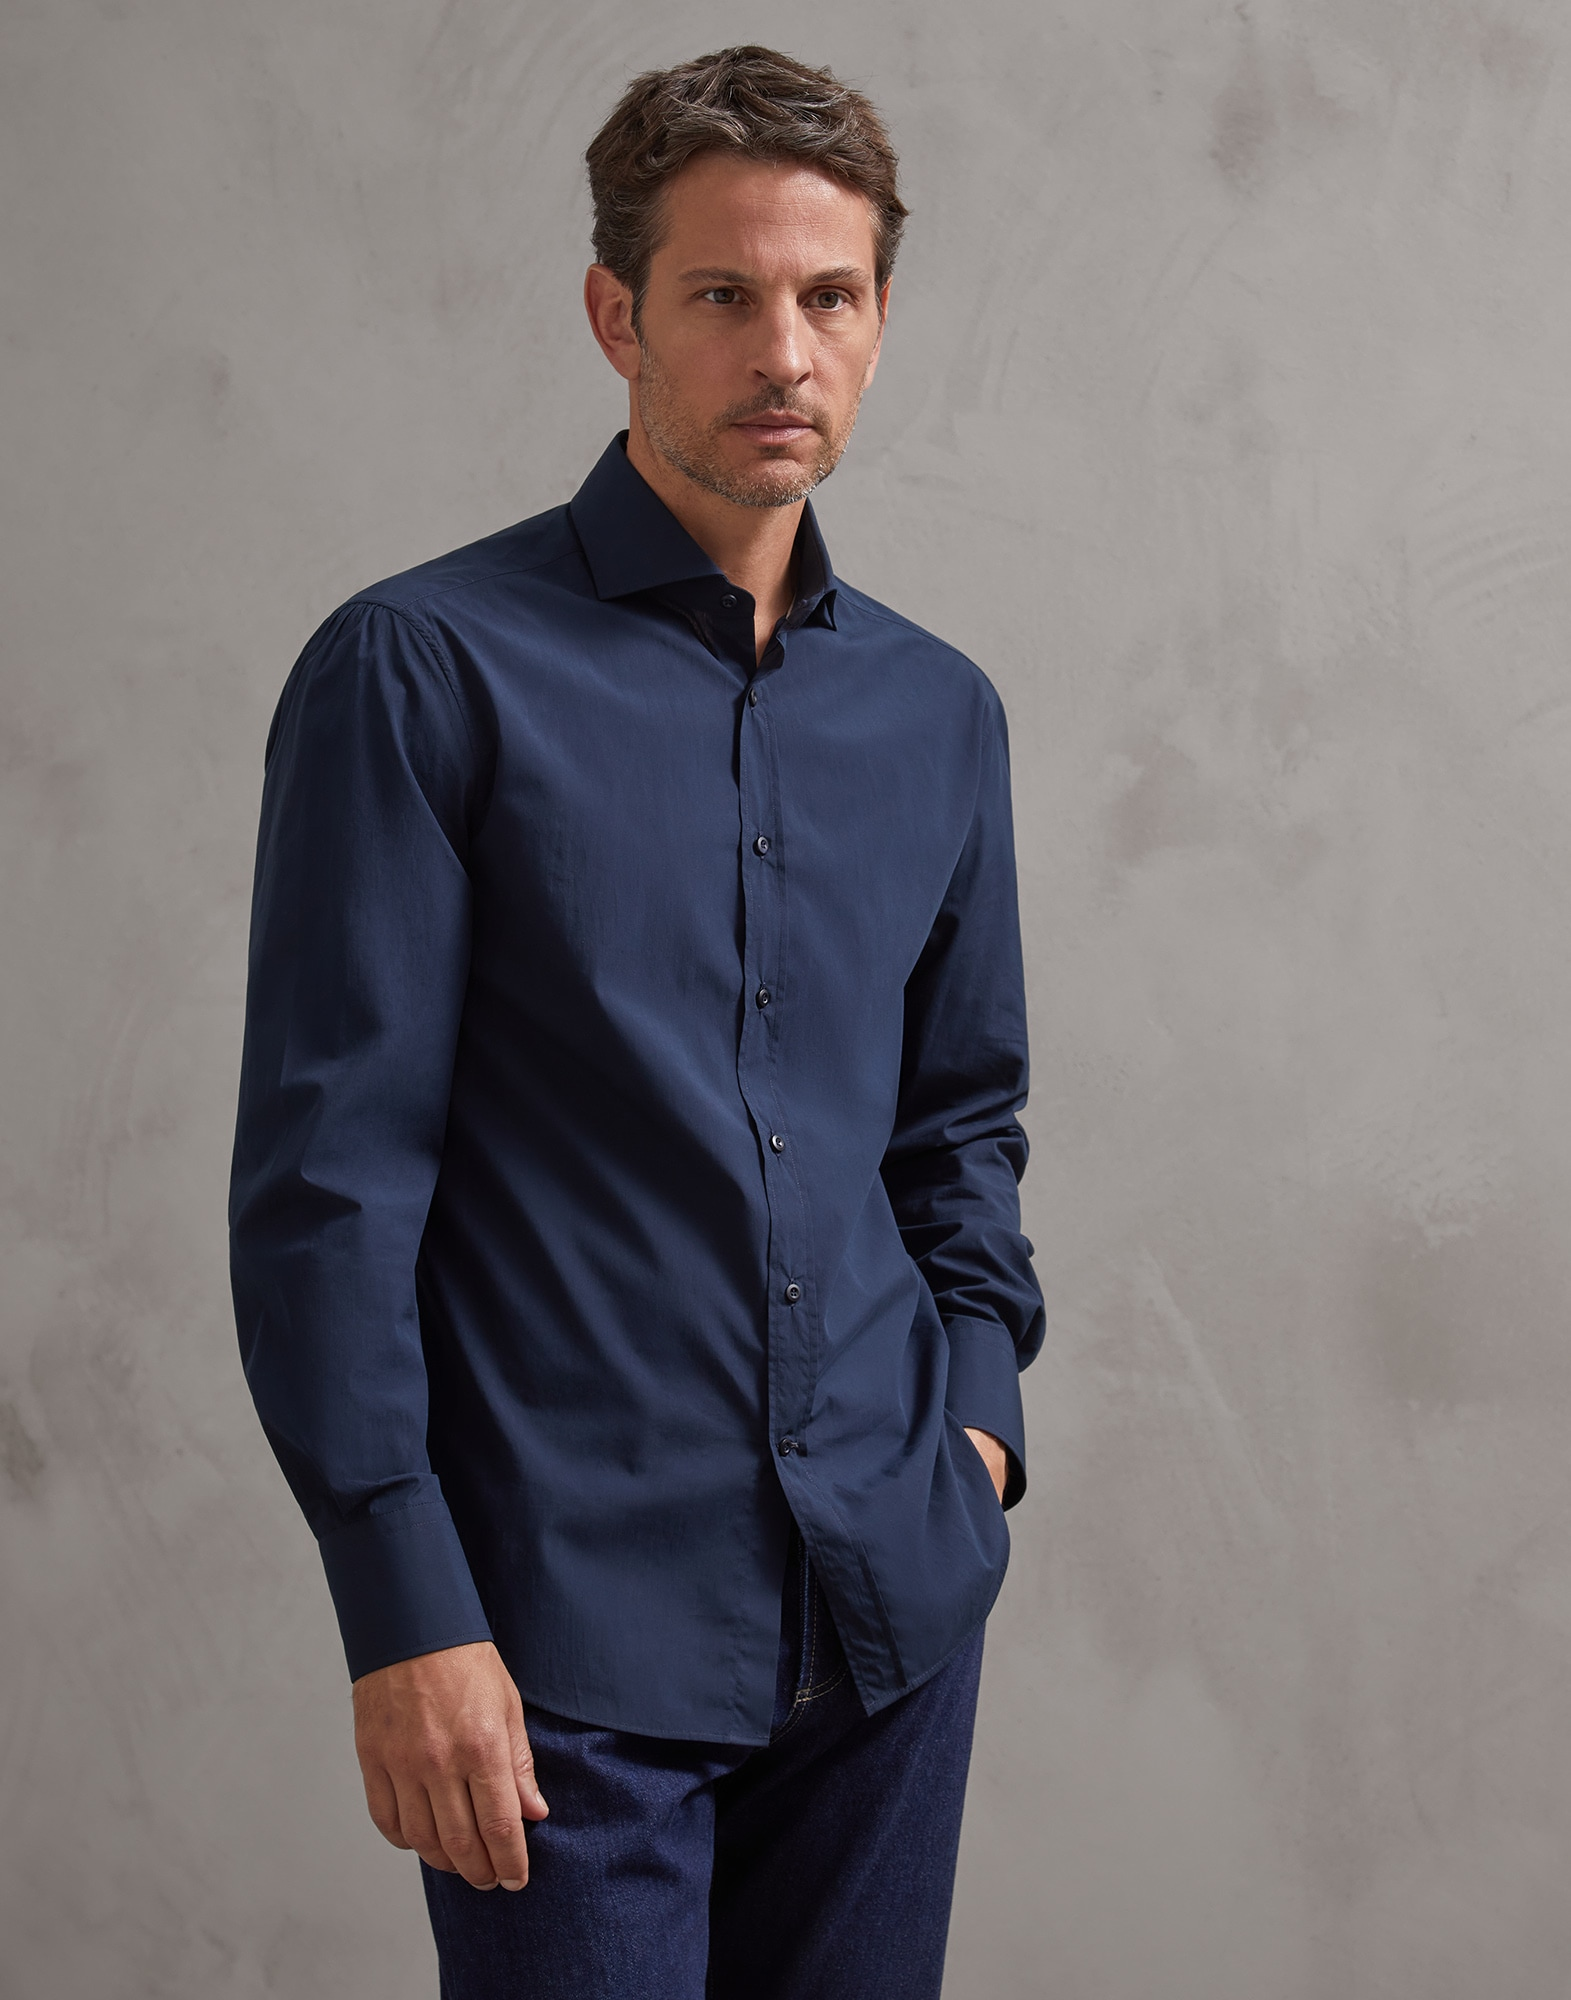 French Collar Shirt Navy Blue Man 1 - Brunello Cucinelli